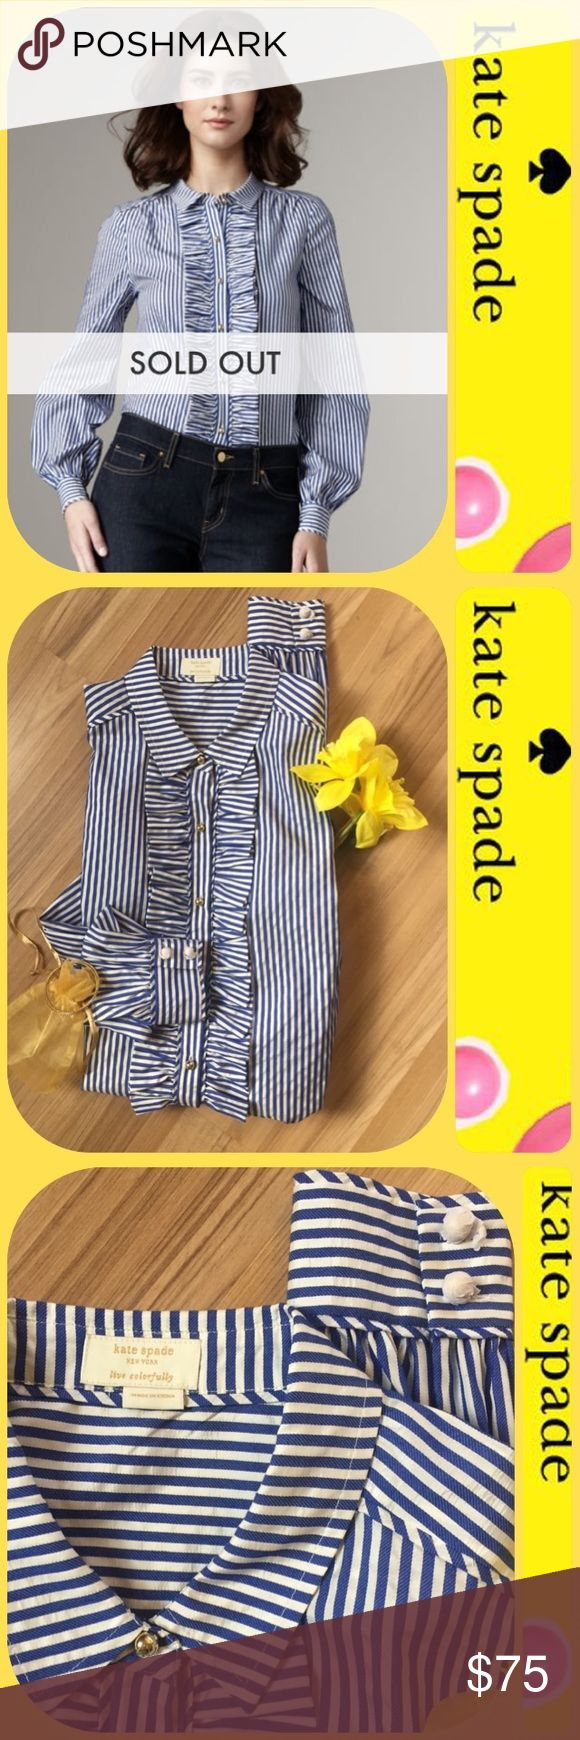 "🆕 ♠️ kate spade Tiff Blouse ♠️ Sz4 ♠️ Totally stunning classic that is NEW. Seersucker cotton silk blend. See photos/ ask questions if needed. Thank you!  Chest: 17.25 "" flat, 25 "" long, Shoulder width 14"" flat. Great casually with jeans or a skirt! kate spade Tops Blouses"